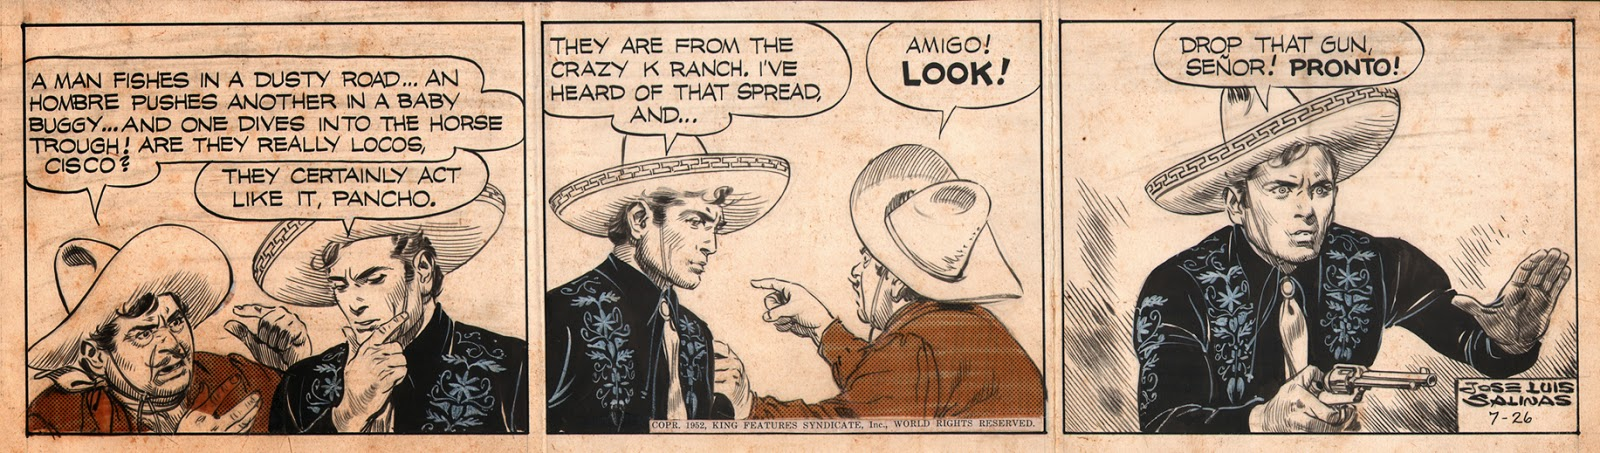 Picked Up This Wonderful Cisco Kid Daily By The Great Jose Luis Salinas Was From Argentina And Drew 1951 1968